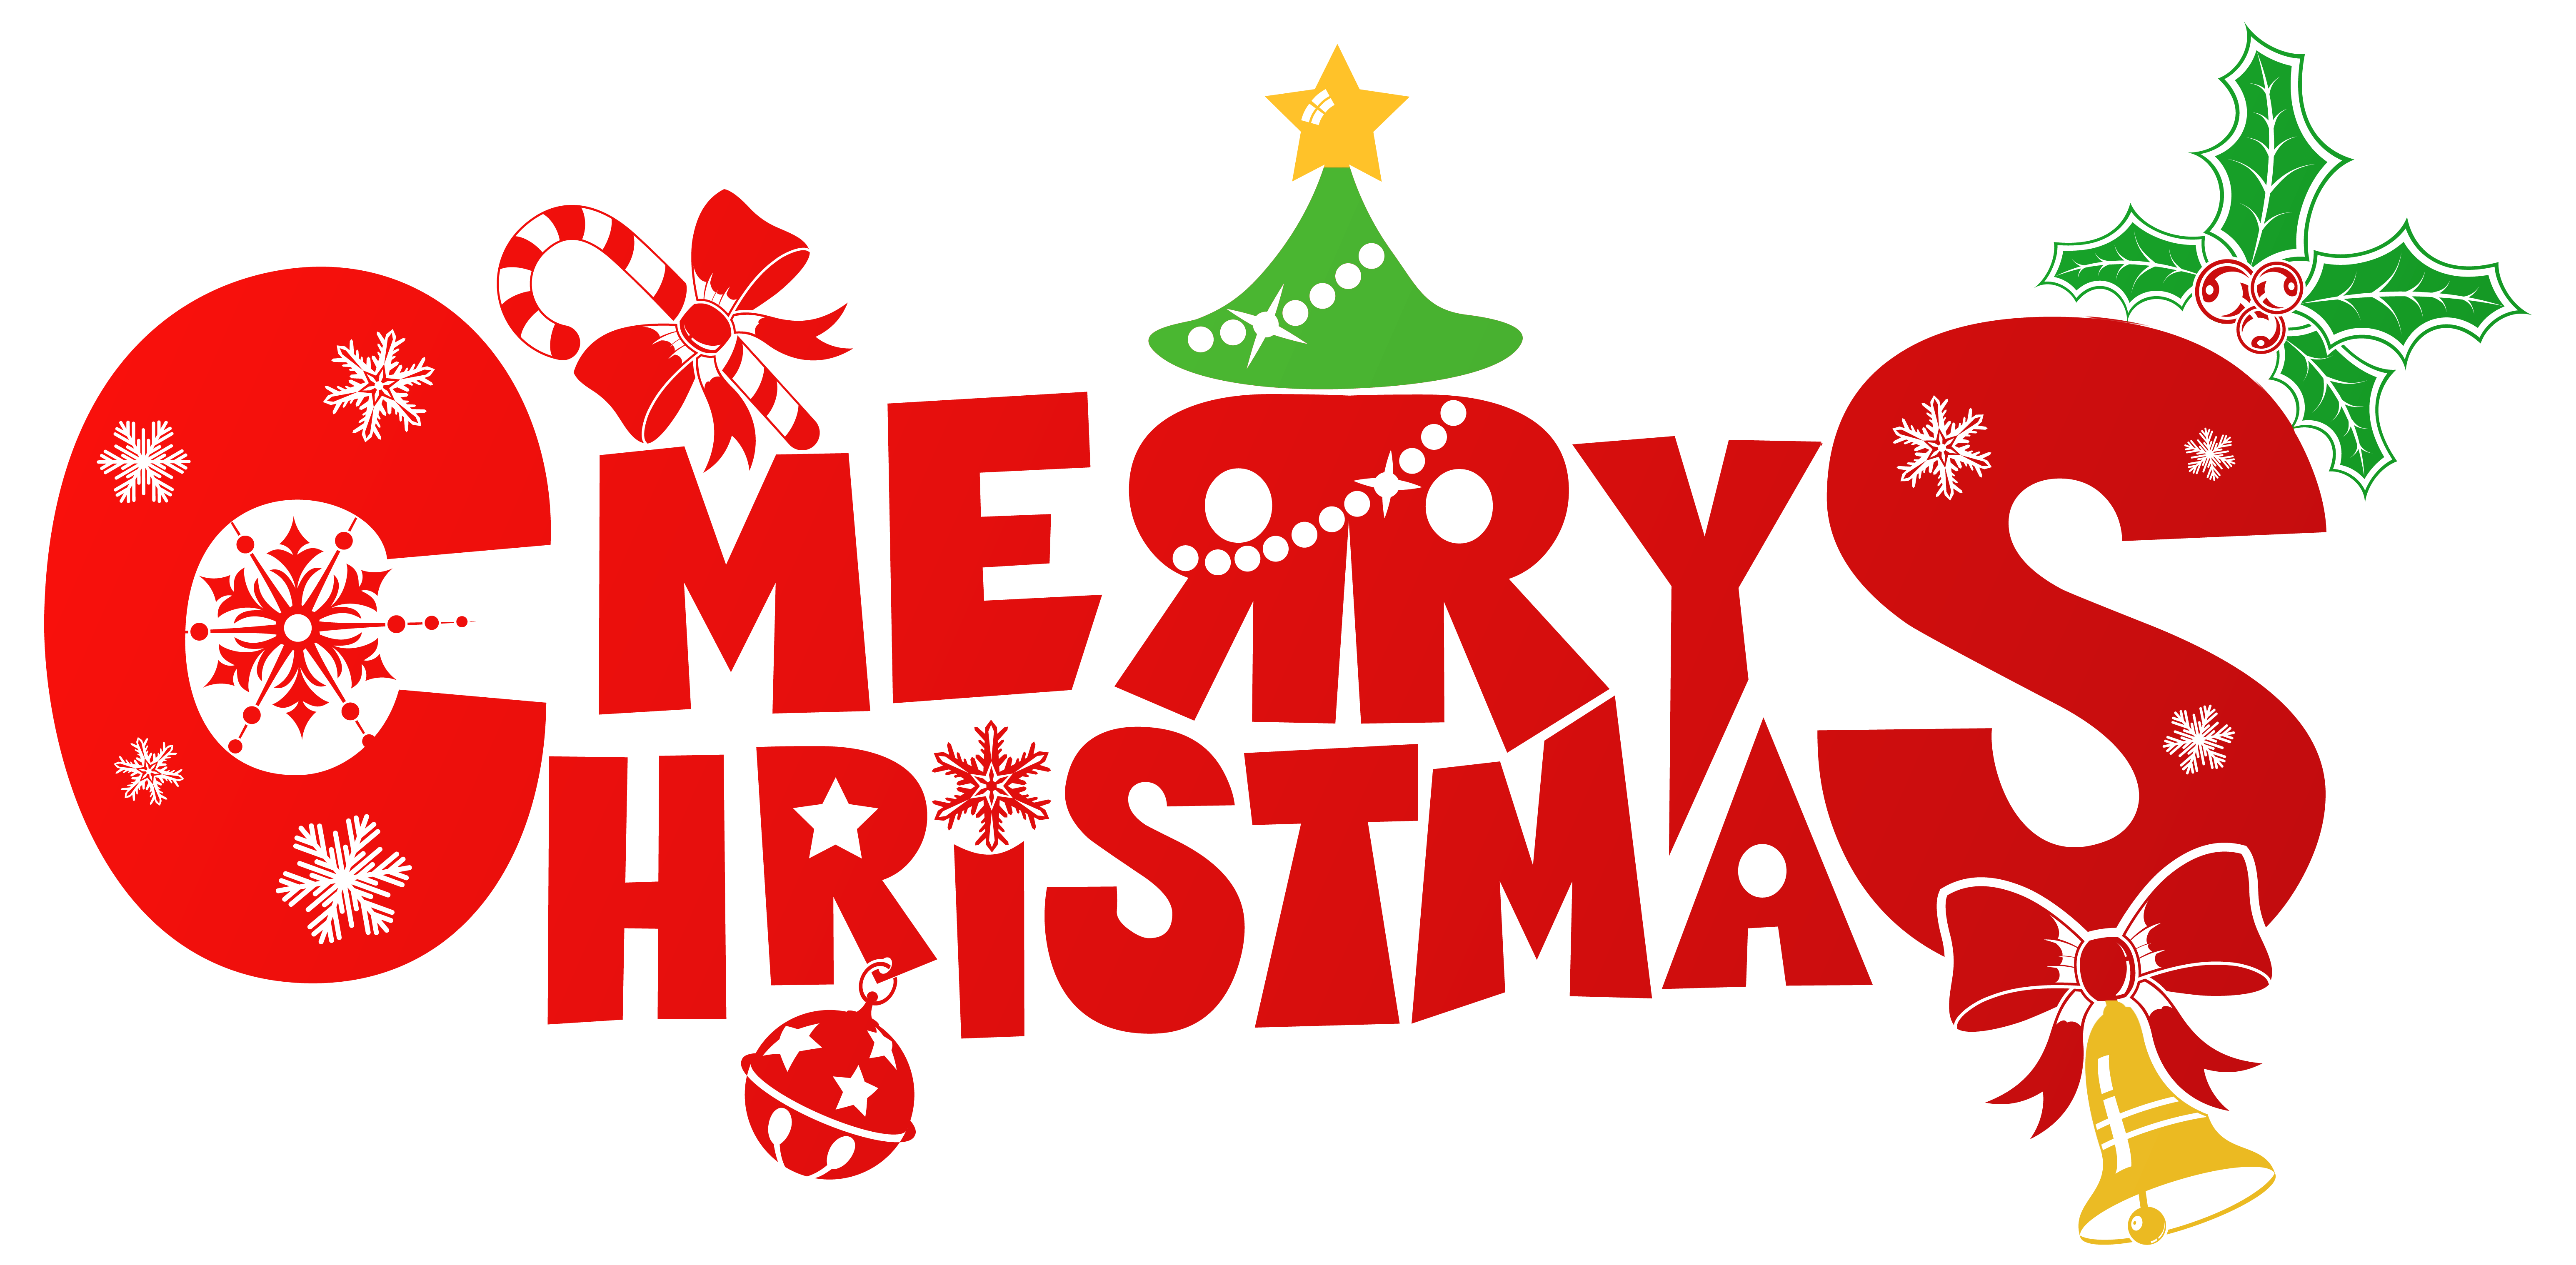 Red merry christmas png. Holly clipart small